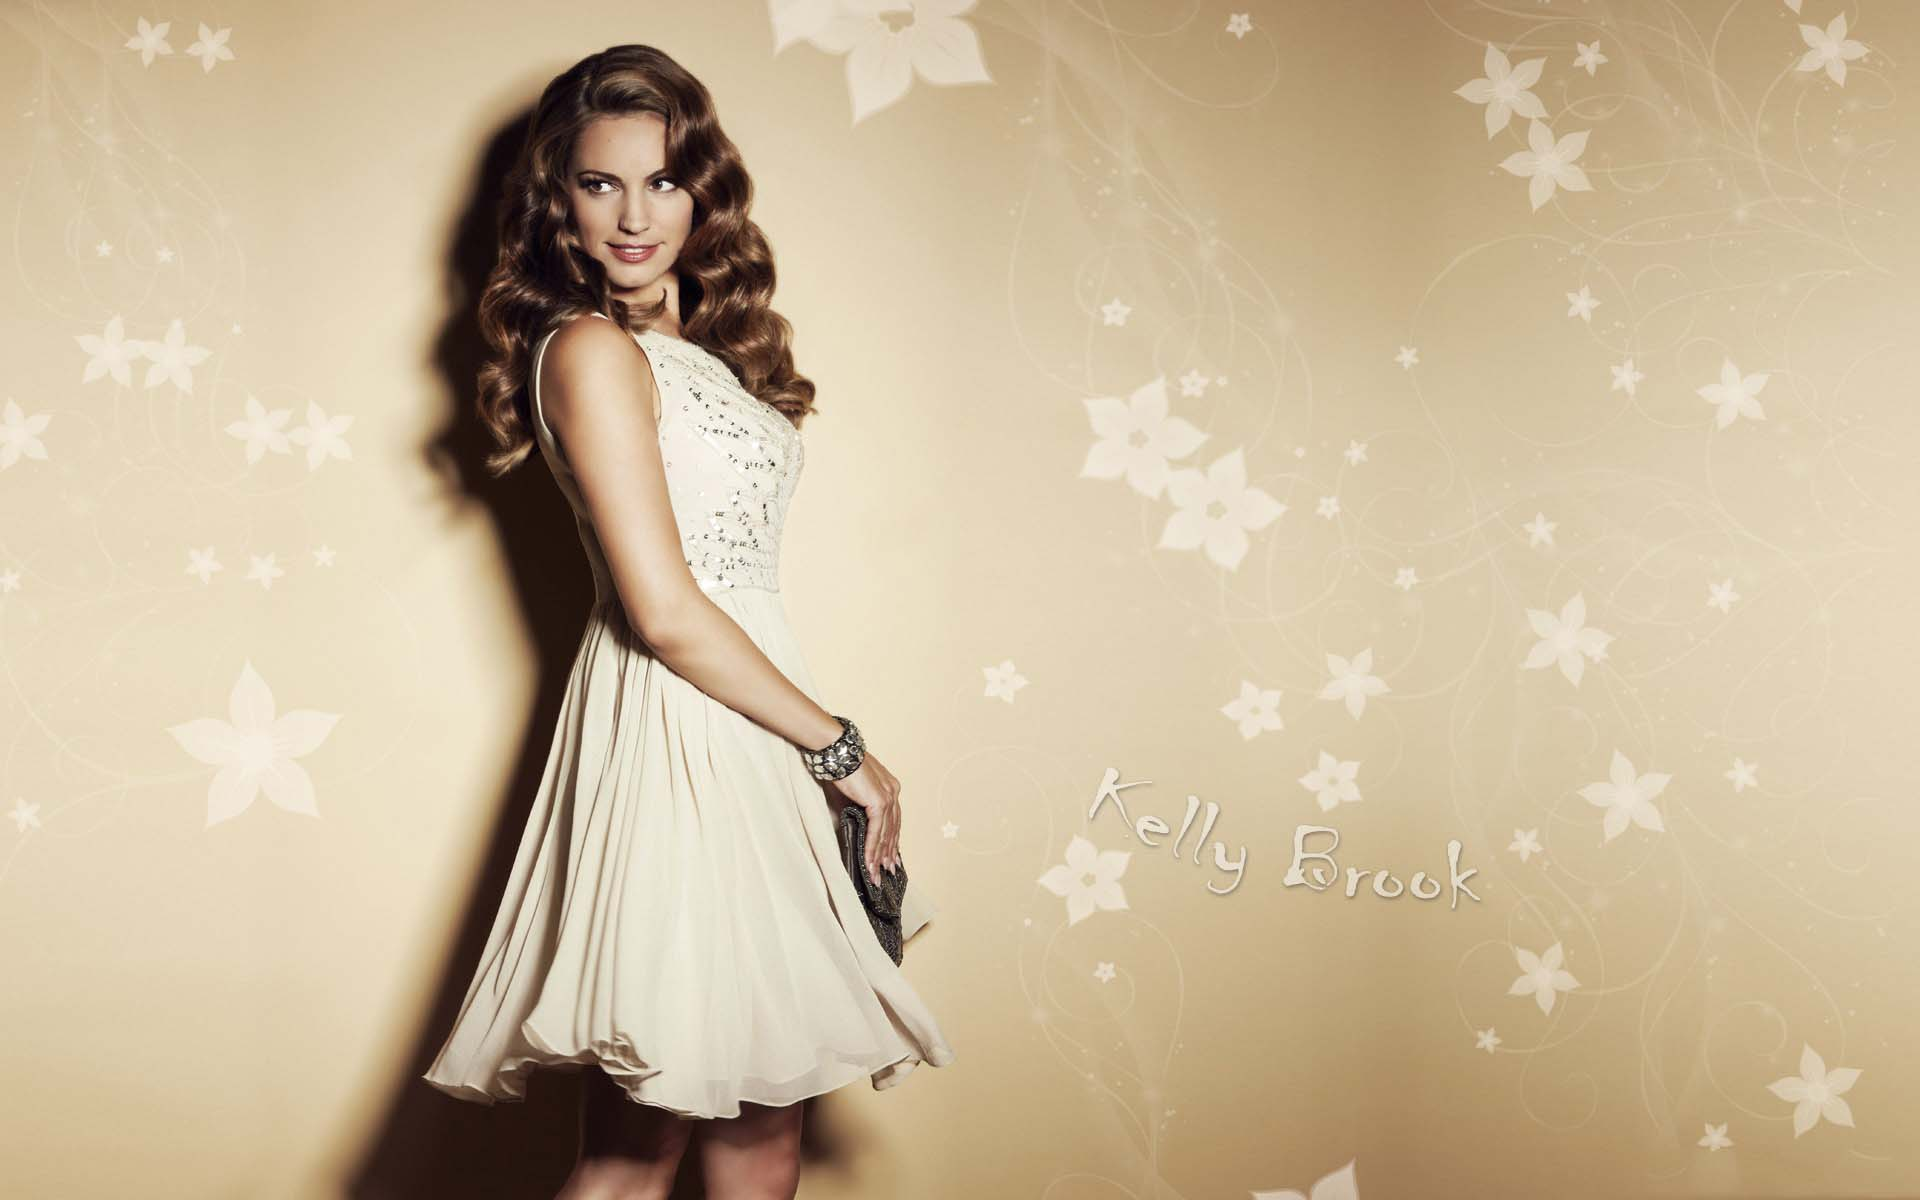 Free Mind Blowing Kelly Brook Themes For Mobile